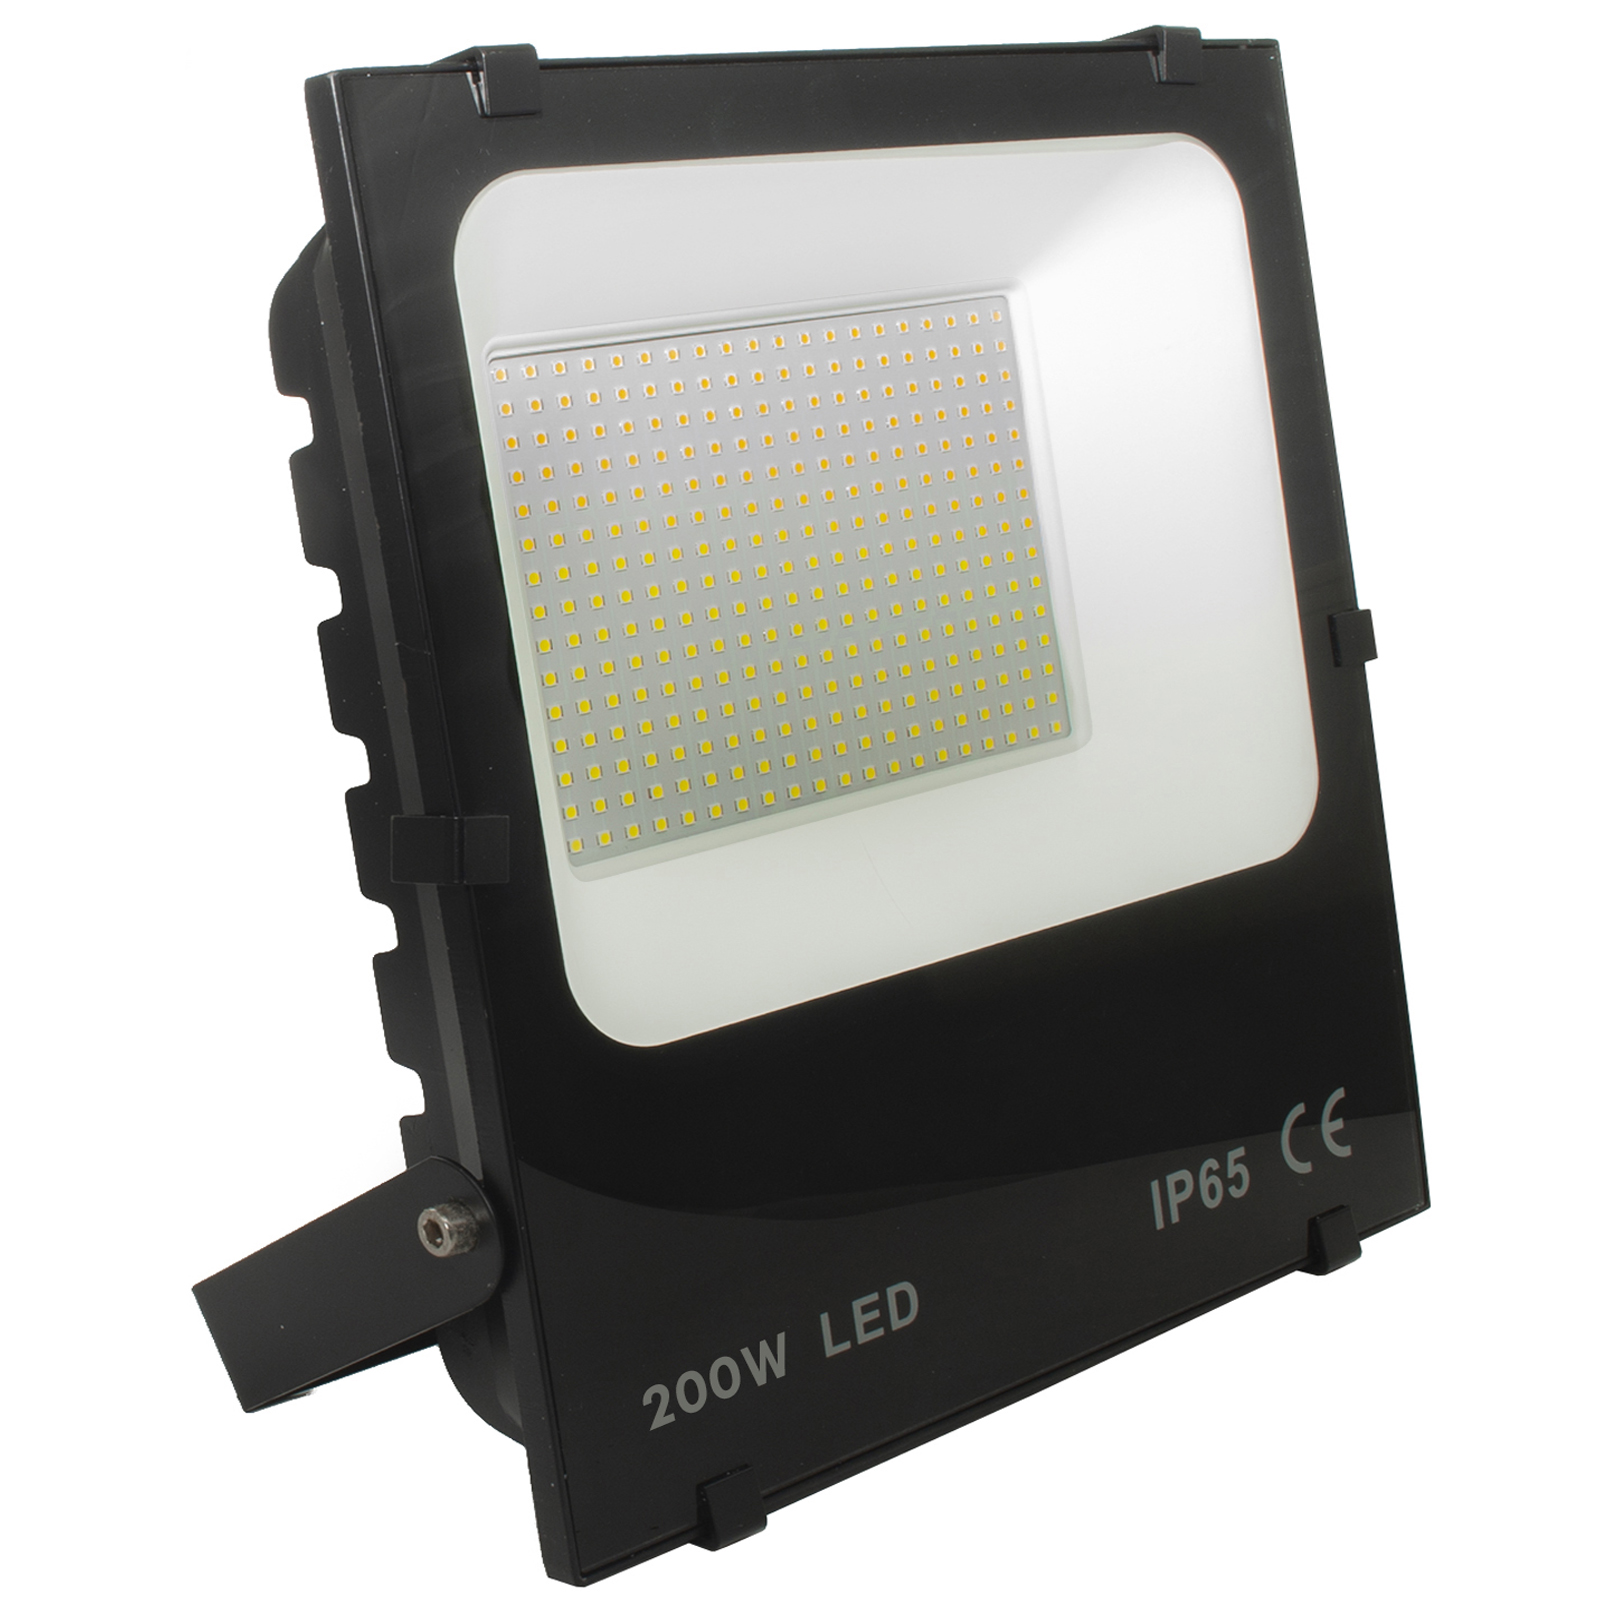 Waterproof slim LED floodlight 200W lights for garden garage 20000lm IP65